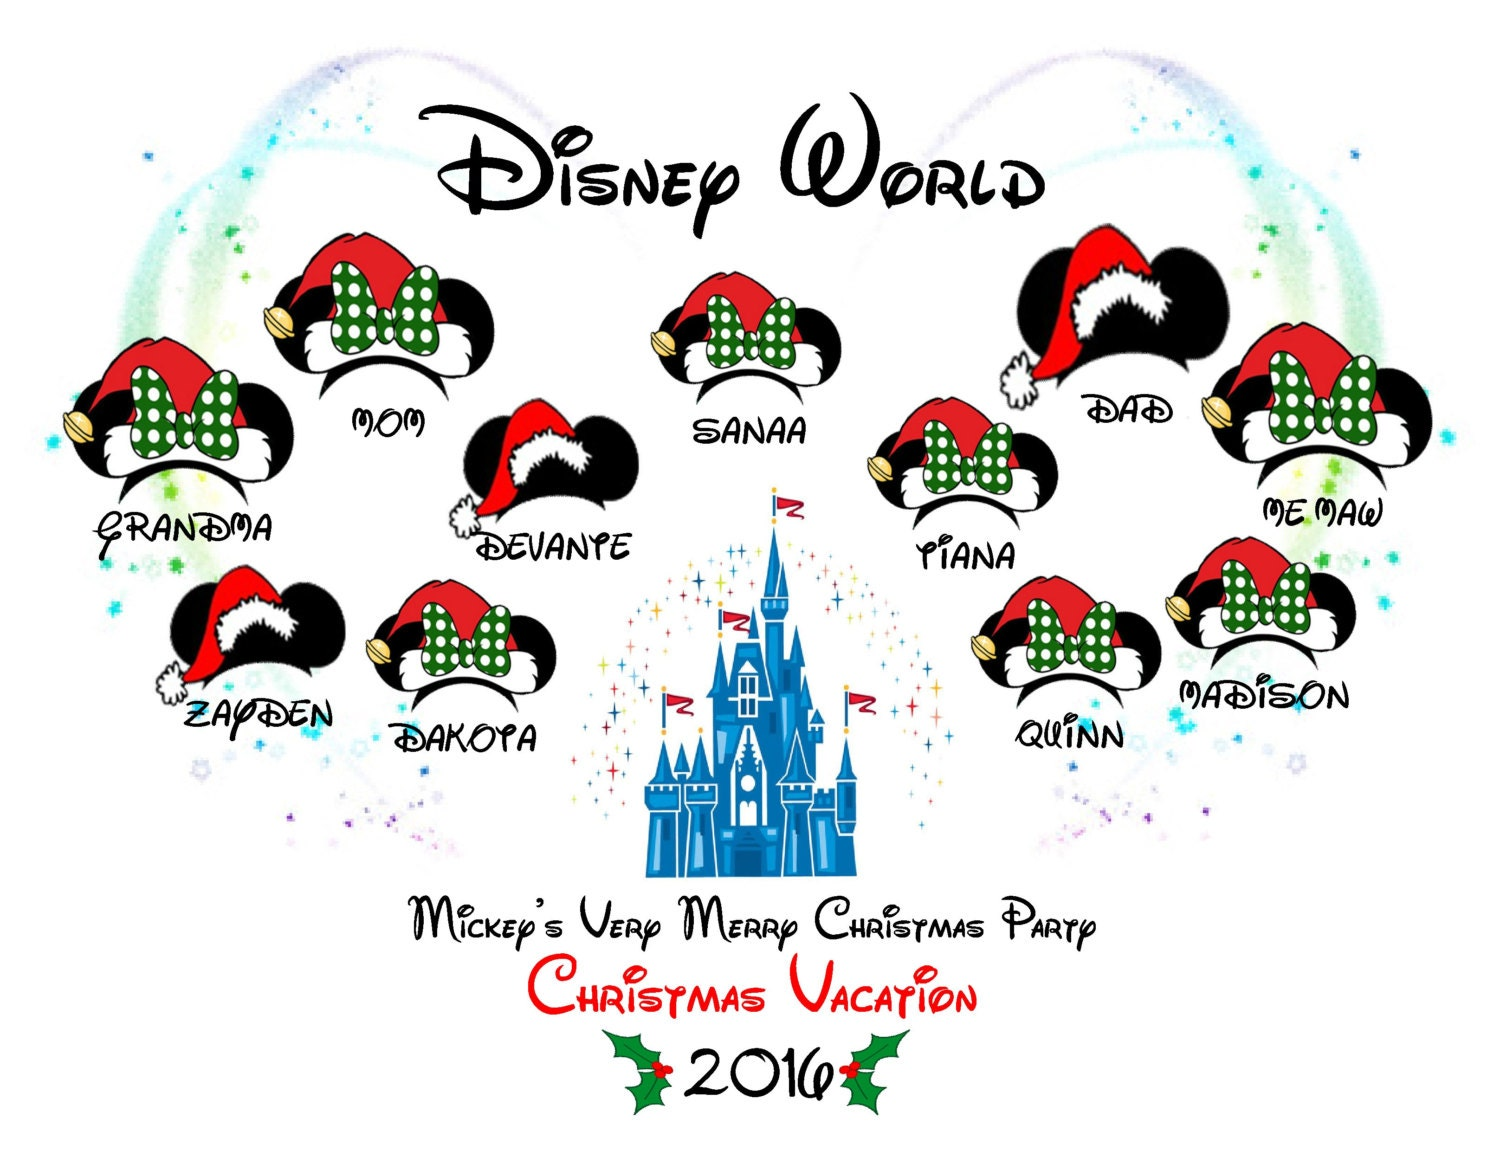 Mickey's Very Merry Christmas Party Christmas Vacation